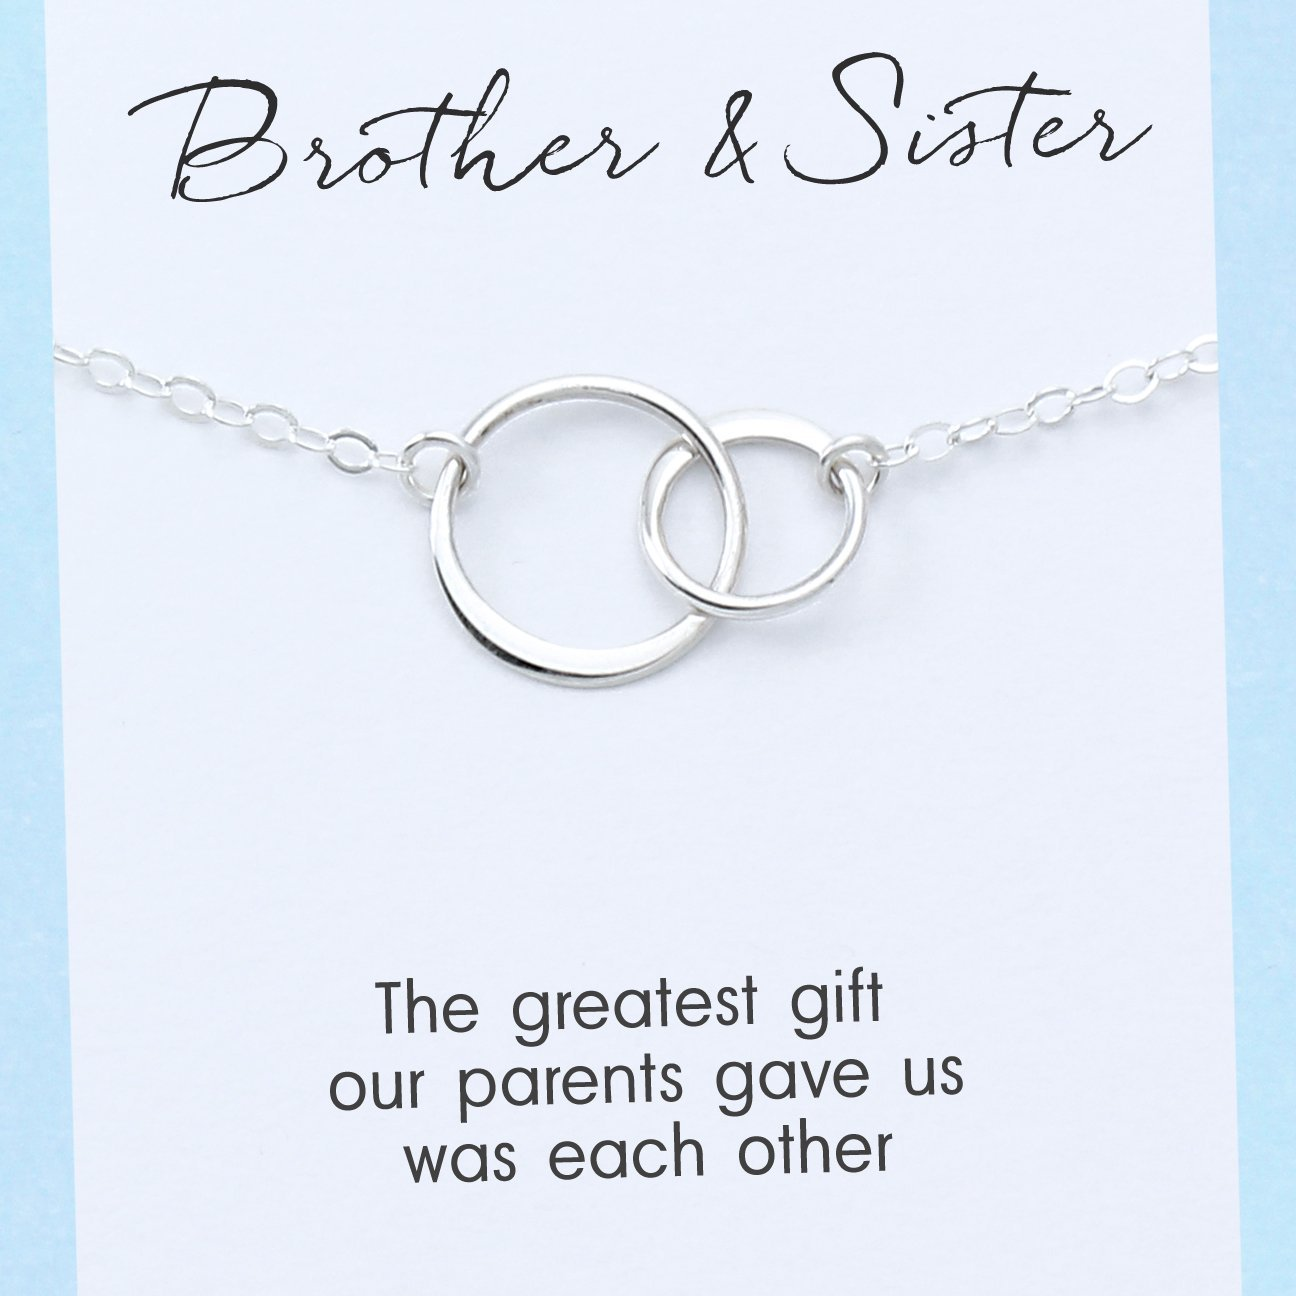 Soul Sister Necklace /• Sister Gift /• Sister Birthday Gift /• Gift for Favorite Sister /• Soul Sister Gift Card /• Two Circle Necklace Silver